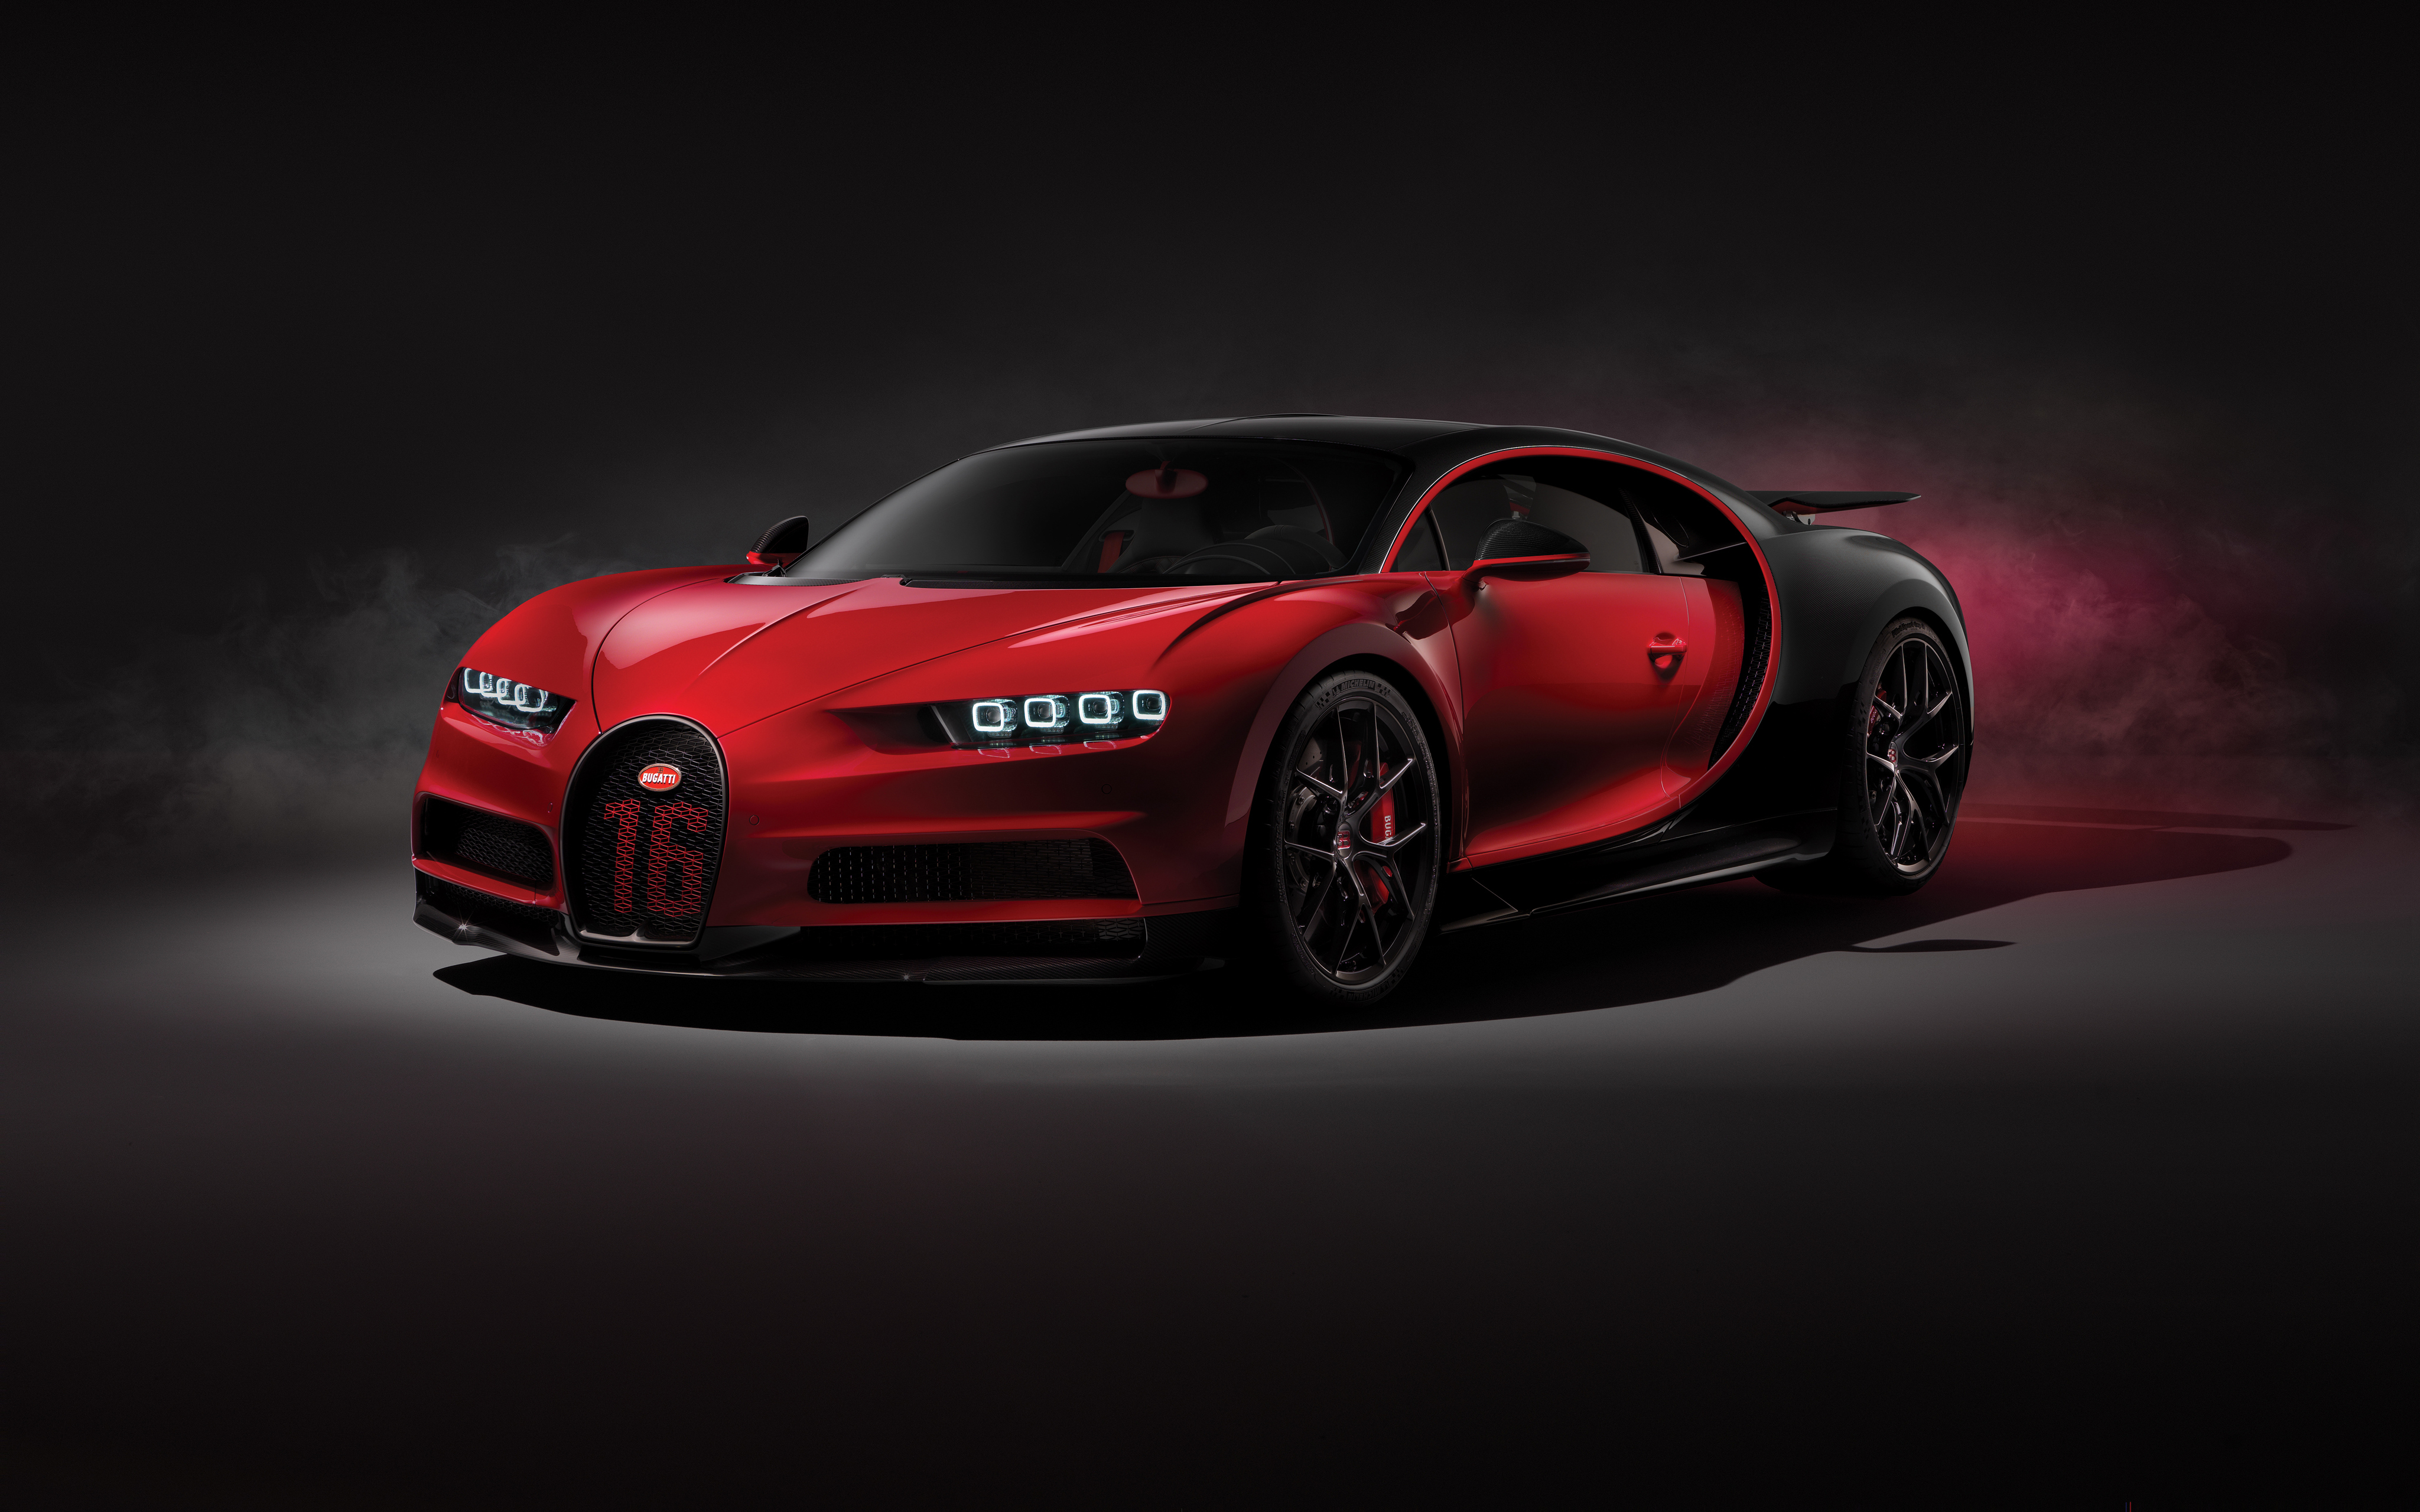 Bugatti Chiron Sport Geneva Motor Show 2018 4k Wallpapers Hd Wallpapers